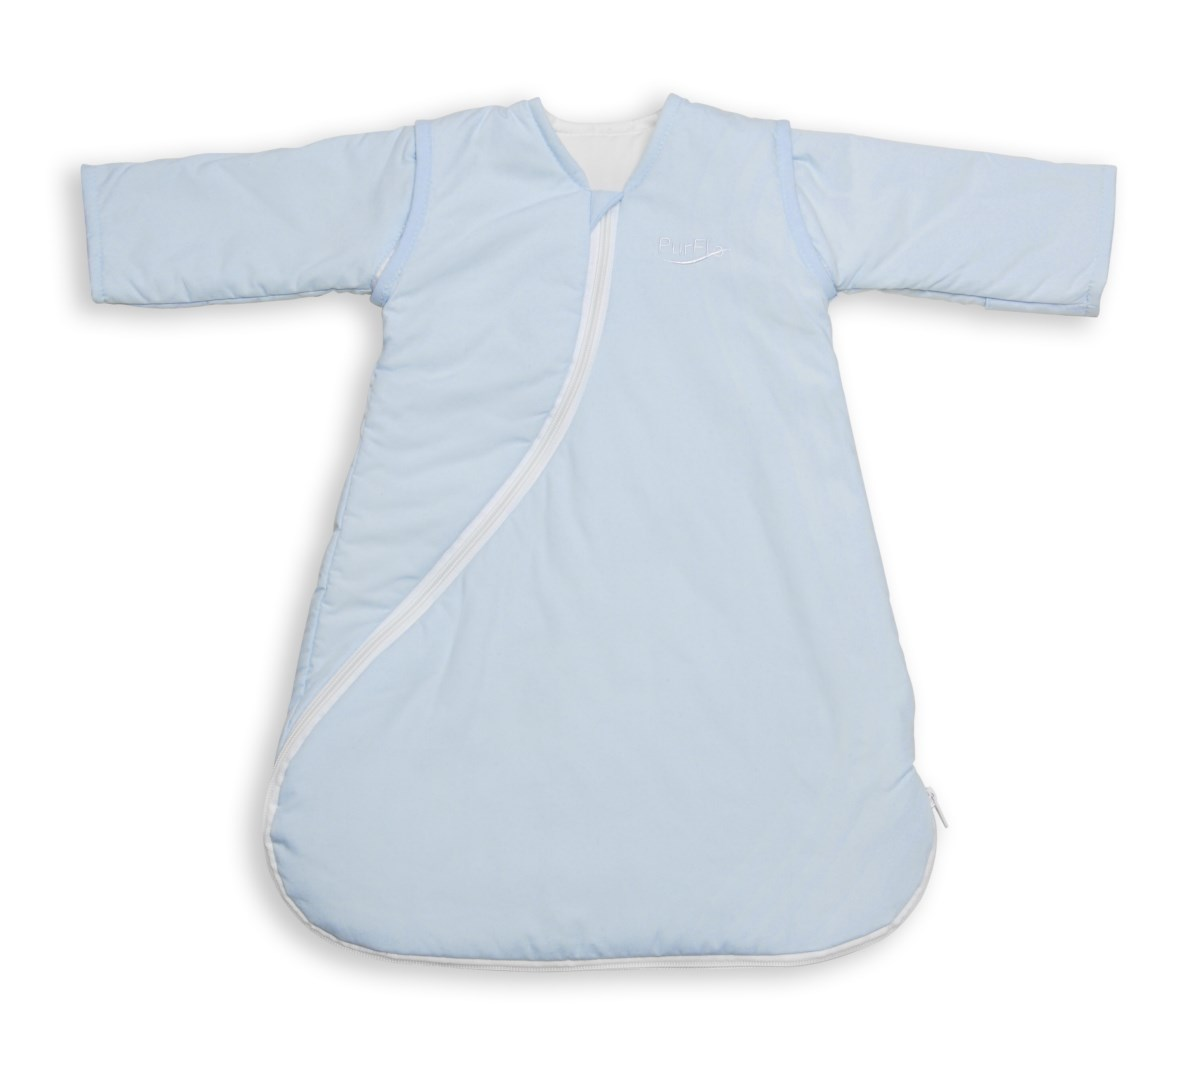 PurFlo Light Blue SleepSac 9-18m 1 tog